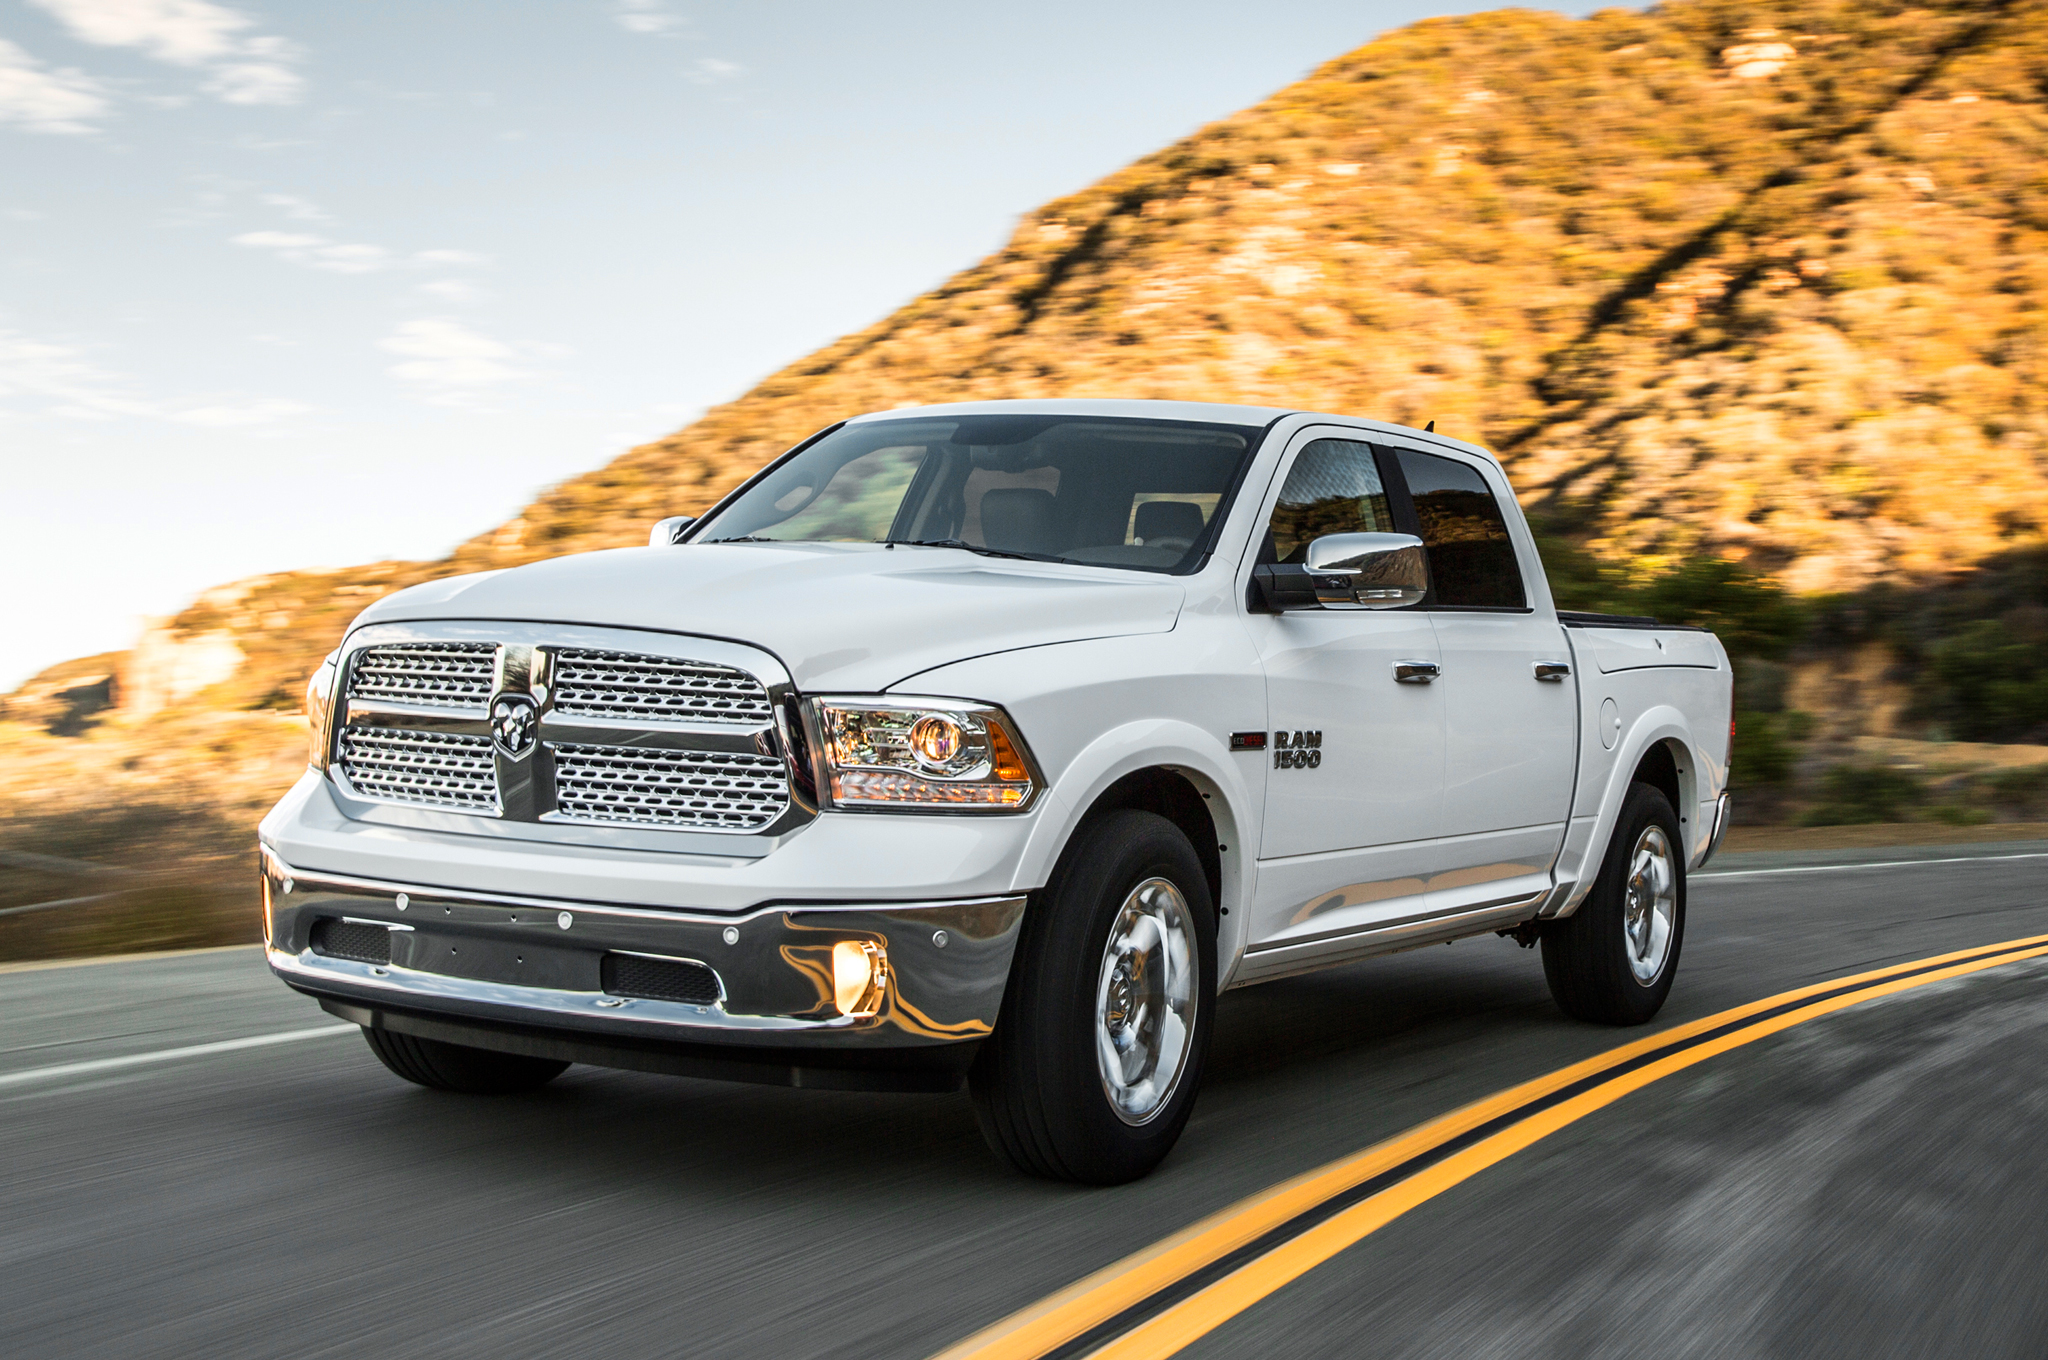 Oil Reset » Blog Archive » 2015 Ram 1500 Oil Life Reset